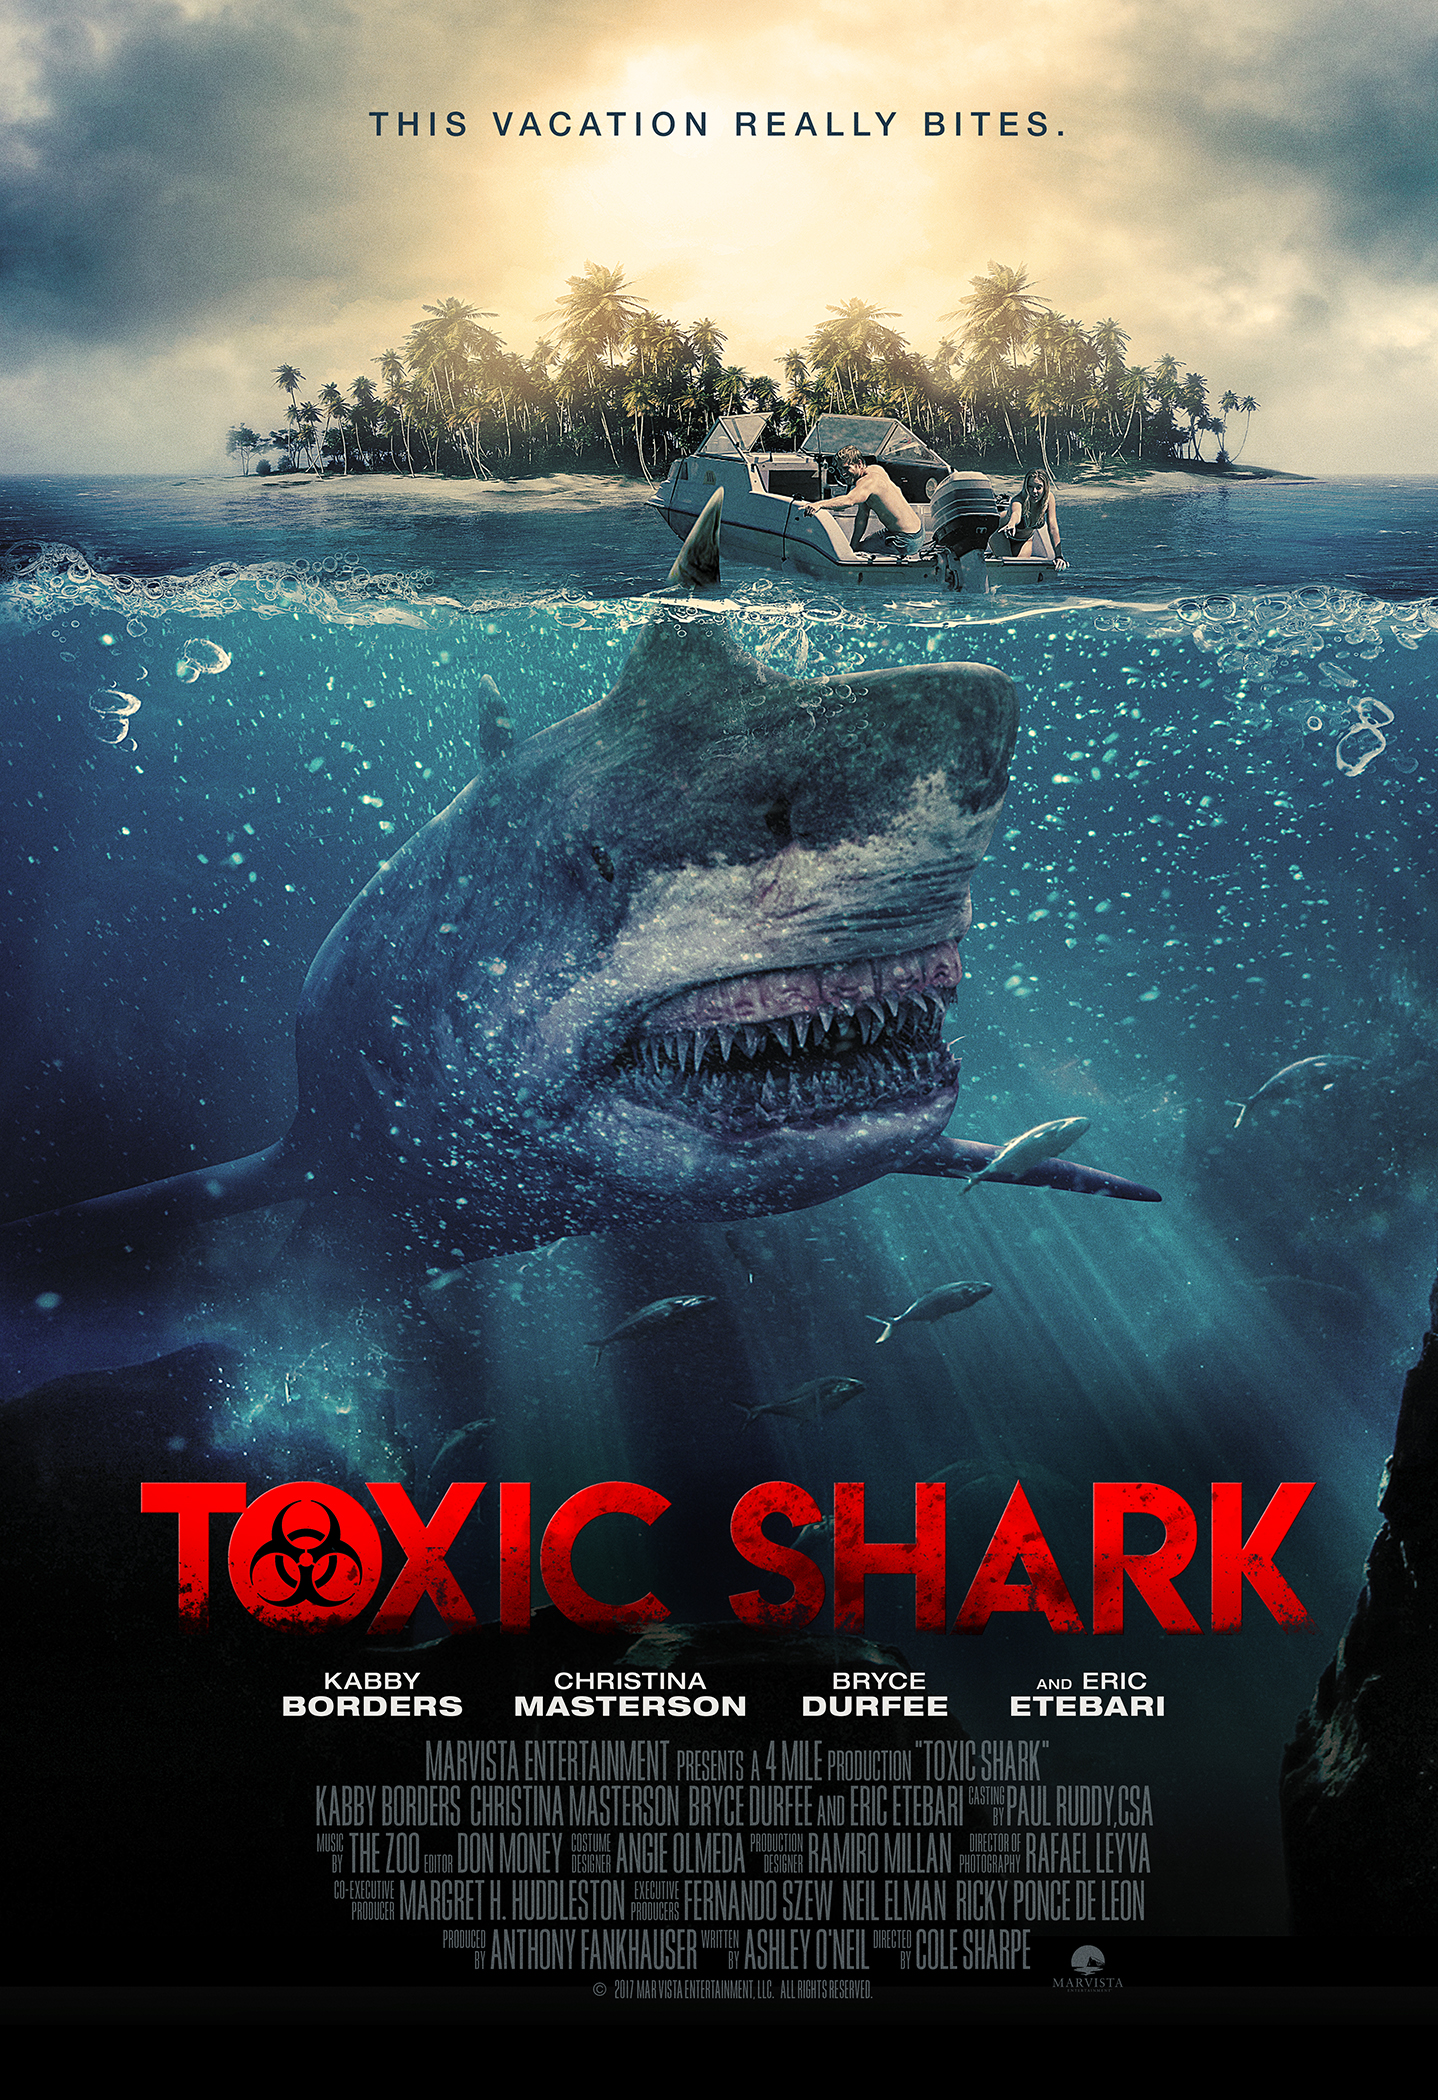 Toxic Shark (TV Movie 2017) - IMDb